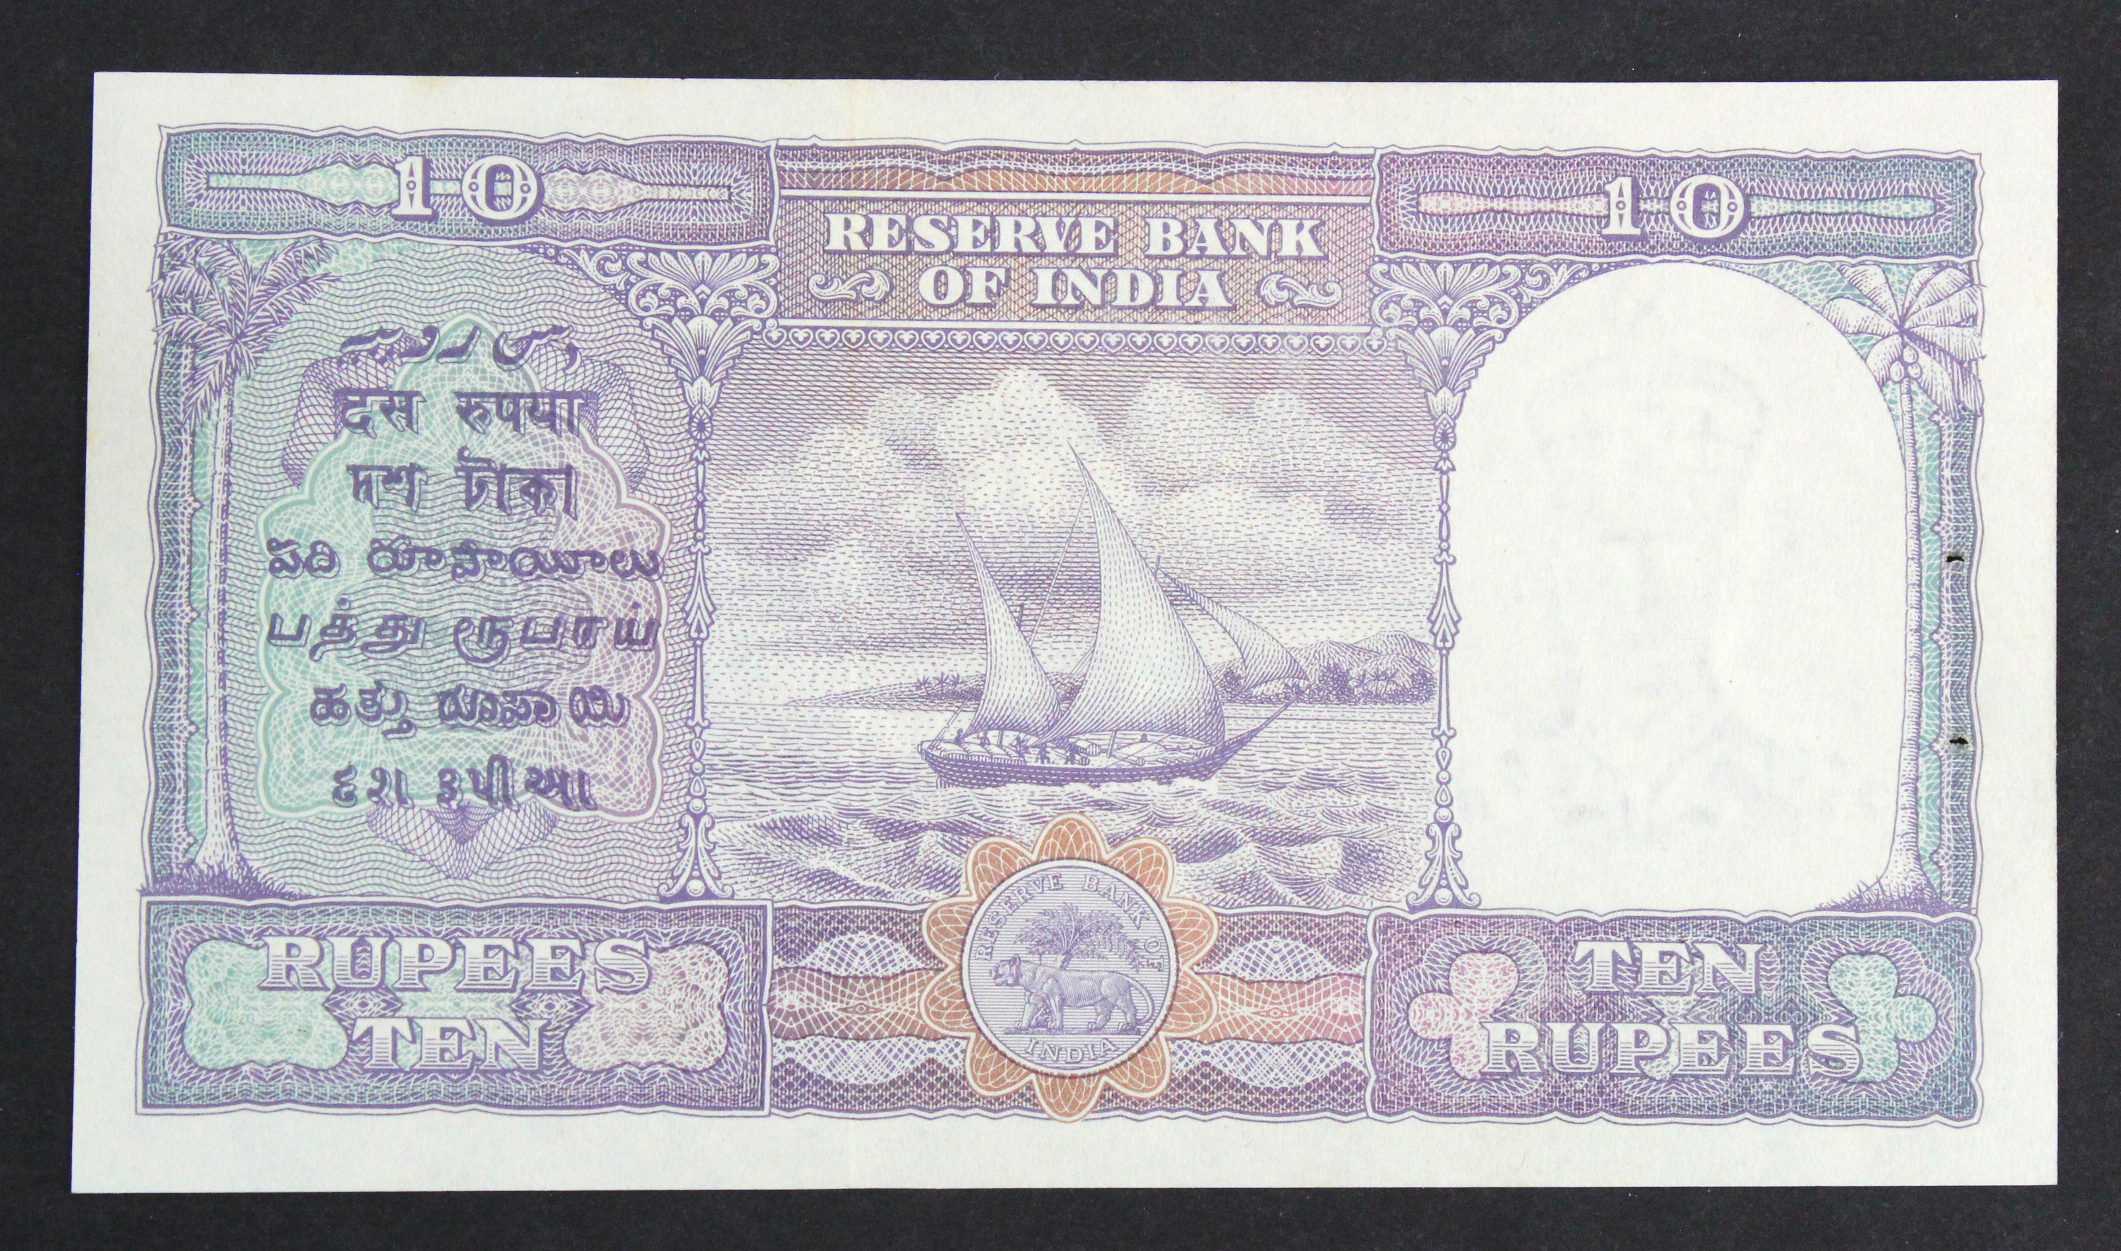 India 10 Rupees issued 1943, King George VI portrait at right, signed C.D. Deshmukh, serial B/32 - Image 2 of 2